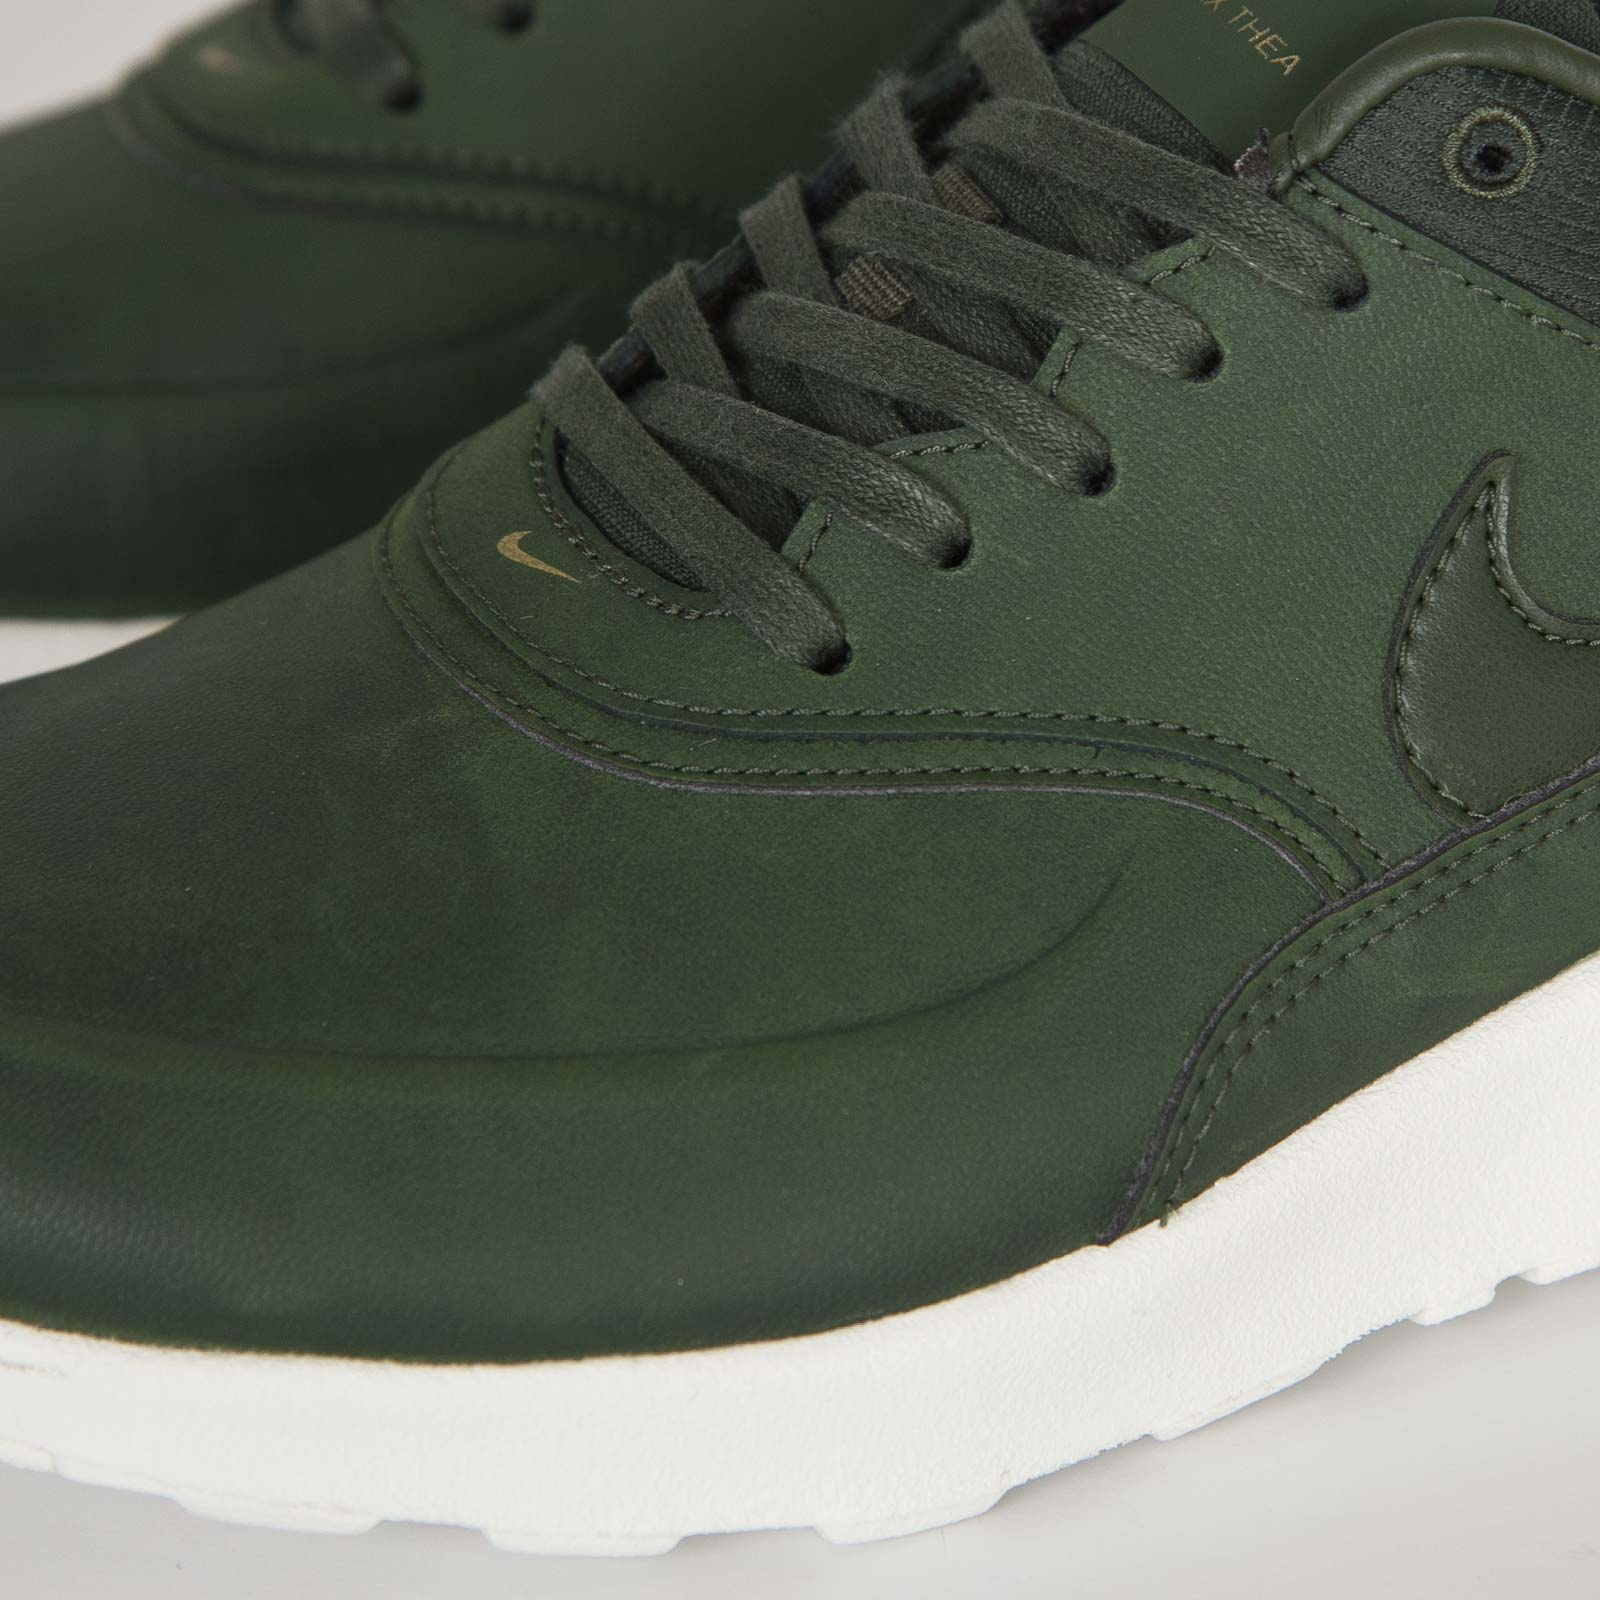 online store buying new buy good Nike Wmns Air Max Thea Premium - 616723-304 - Sneakersnstuff ...